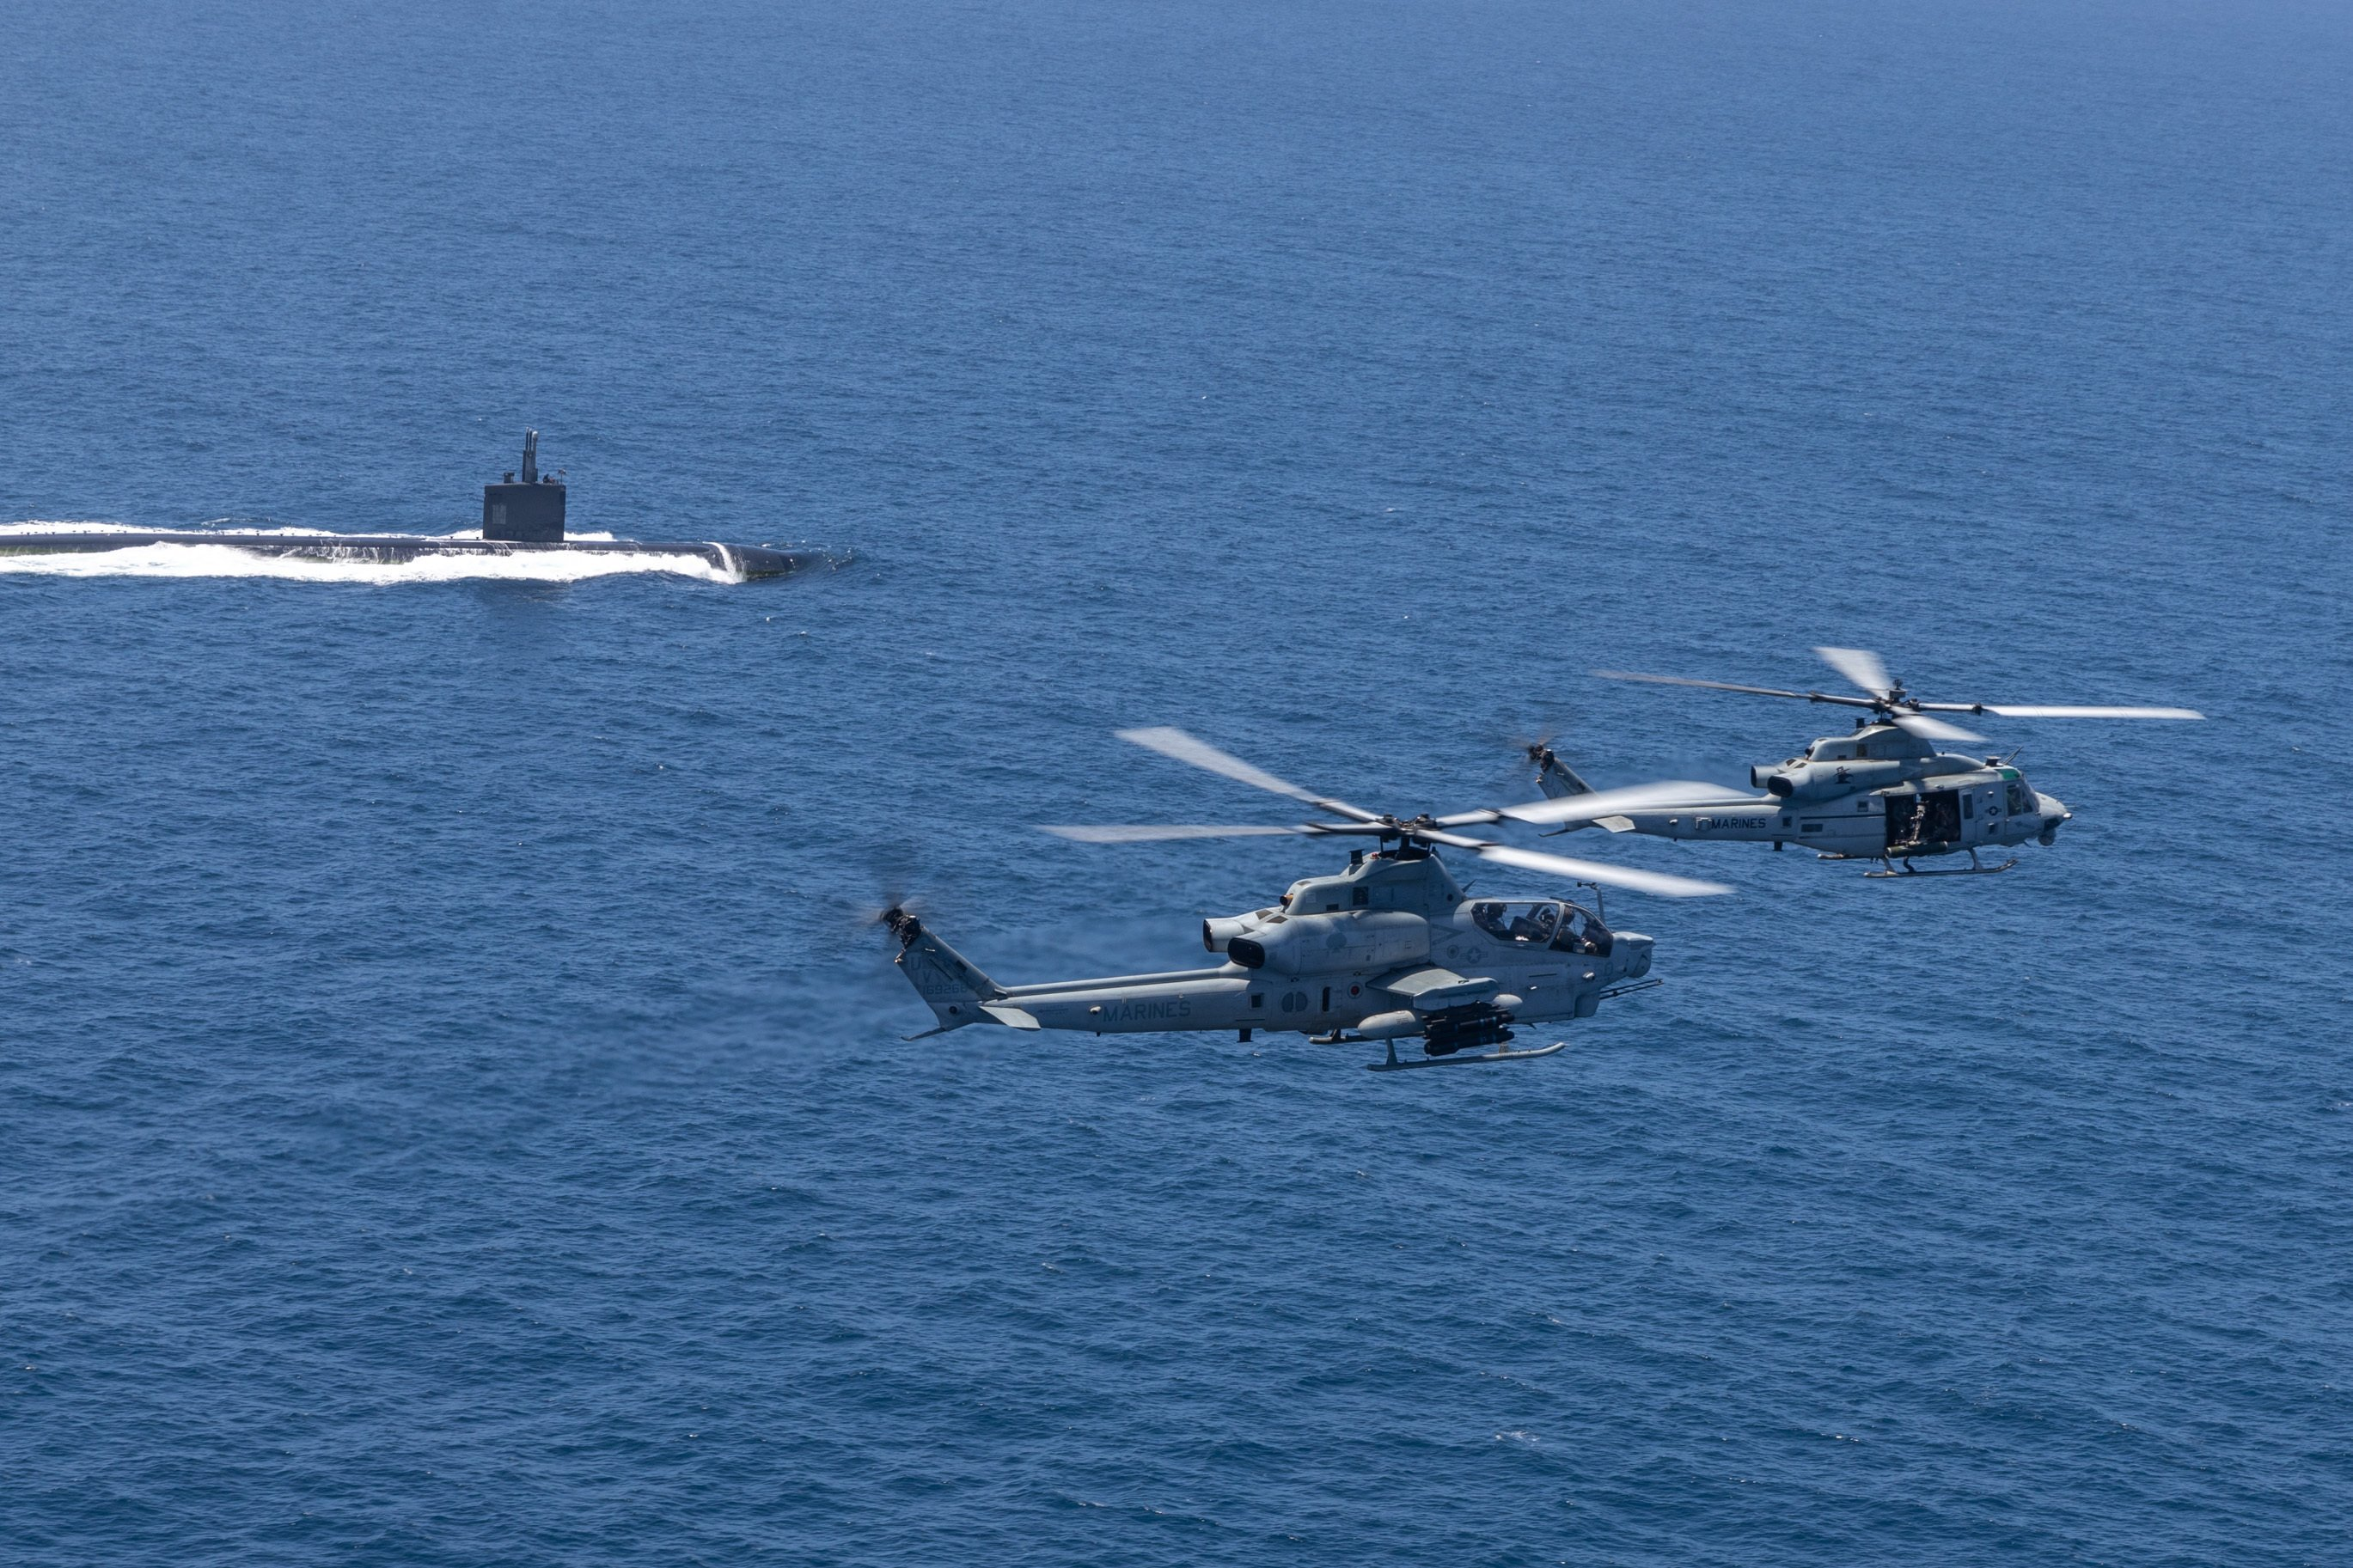 USMC HMLA-267 AH-1Z UH-1Y over USN sub in Pacific during Ex Summer Fury 20-07-21 [USMC/Lance Cpl Isaac Velasco]